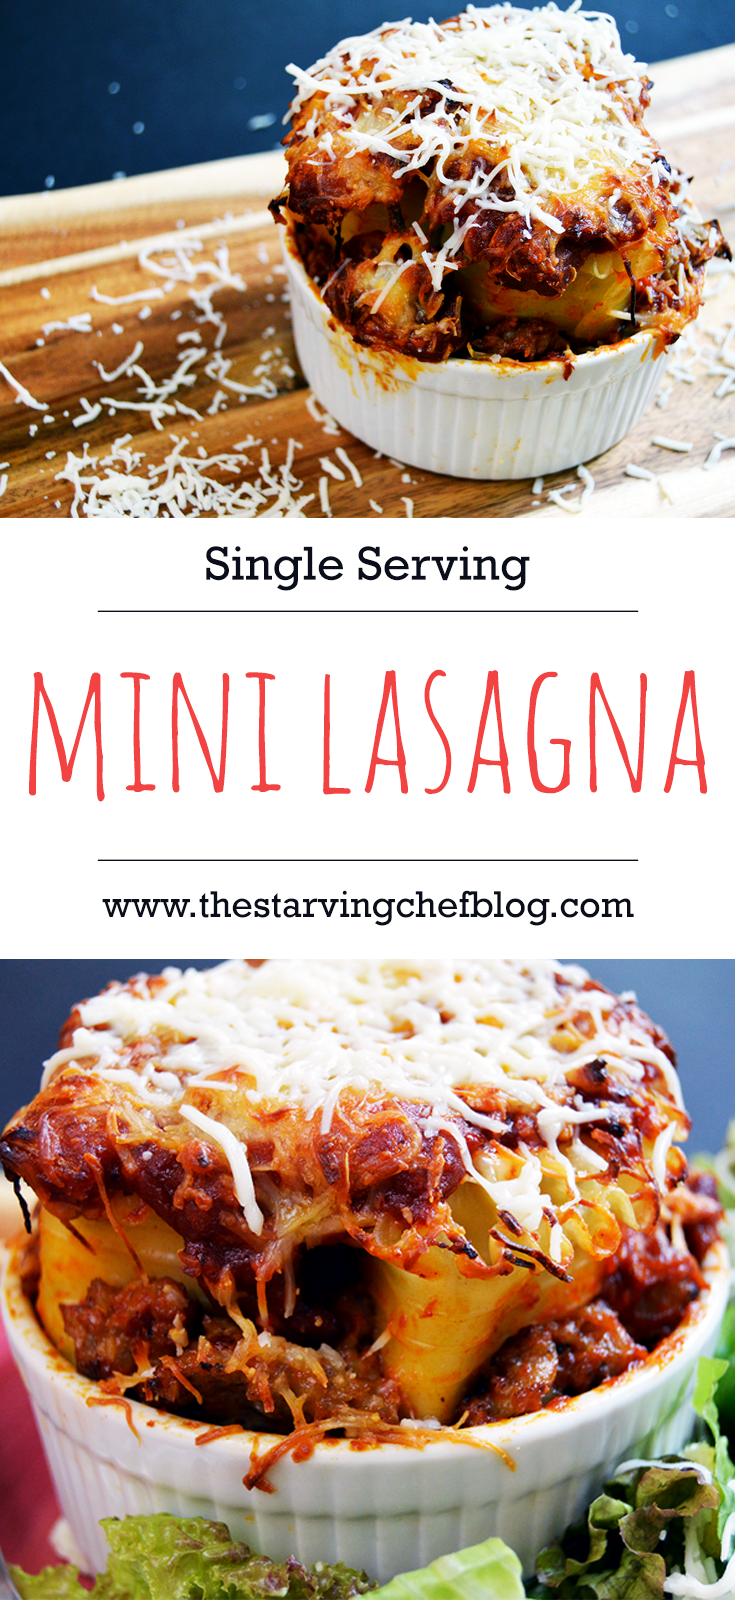 The Starving Chef | Here is a recipe for a small dish with a ton of flavor - single serving lasagna!